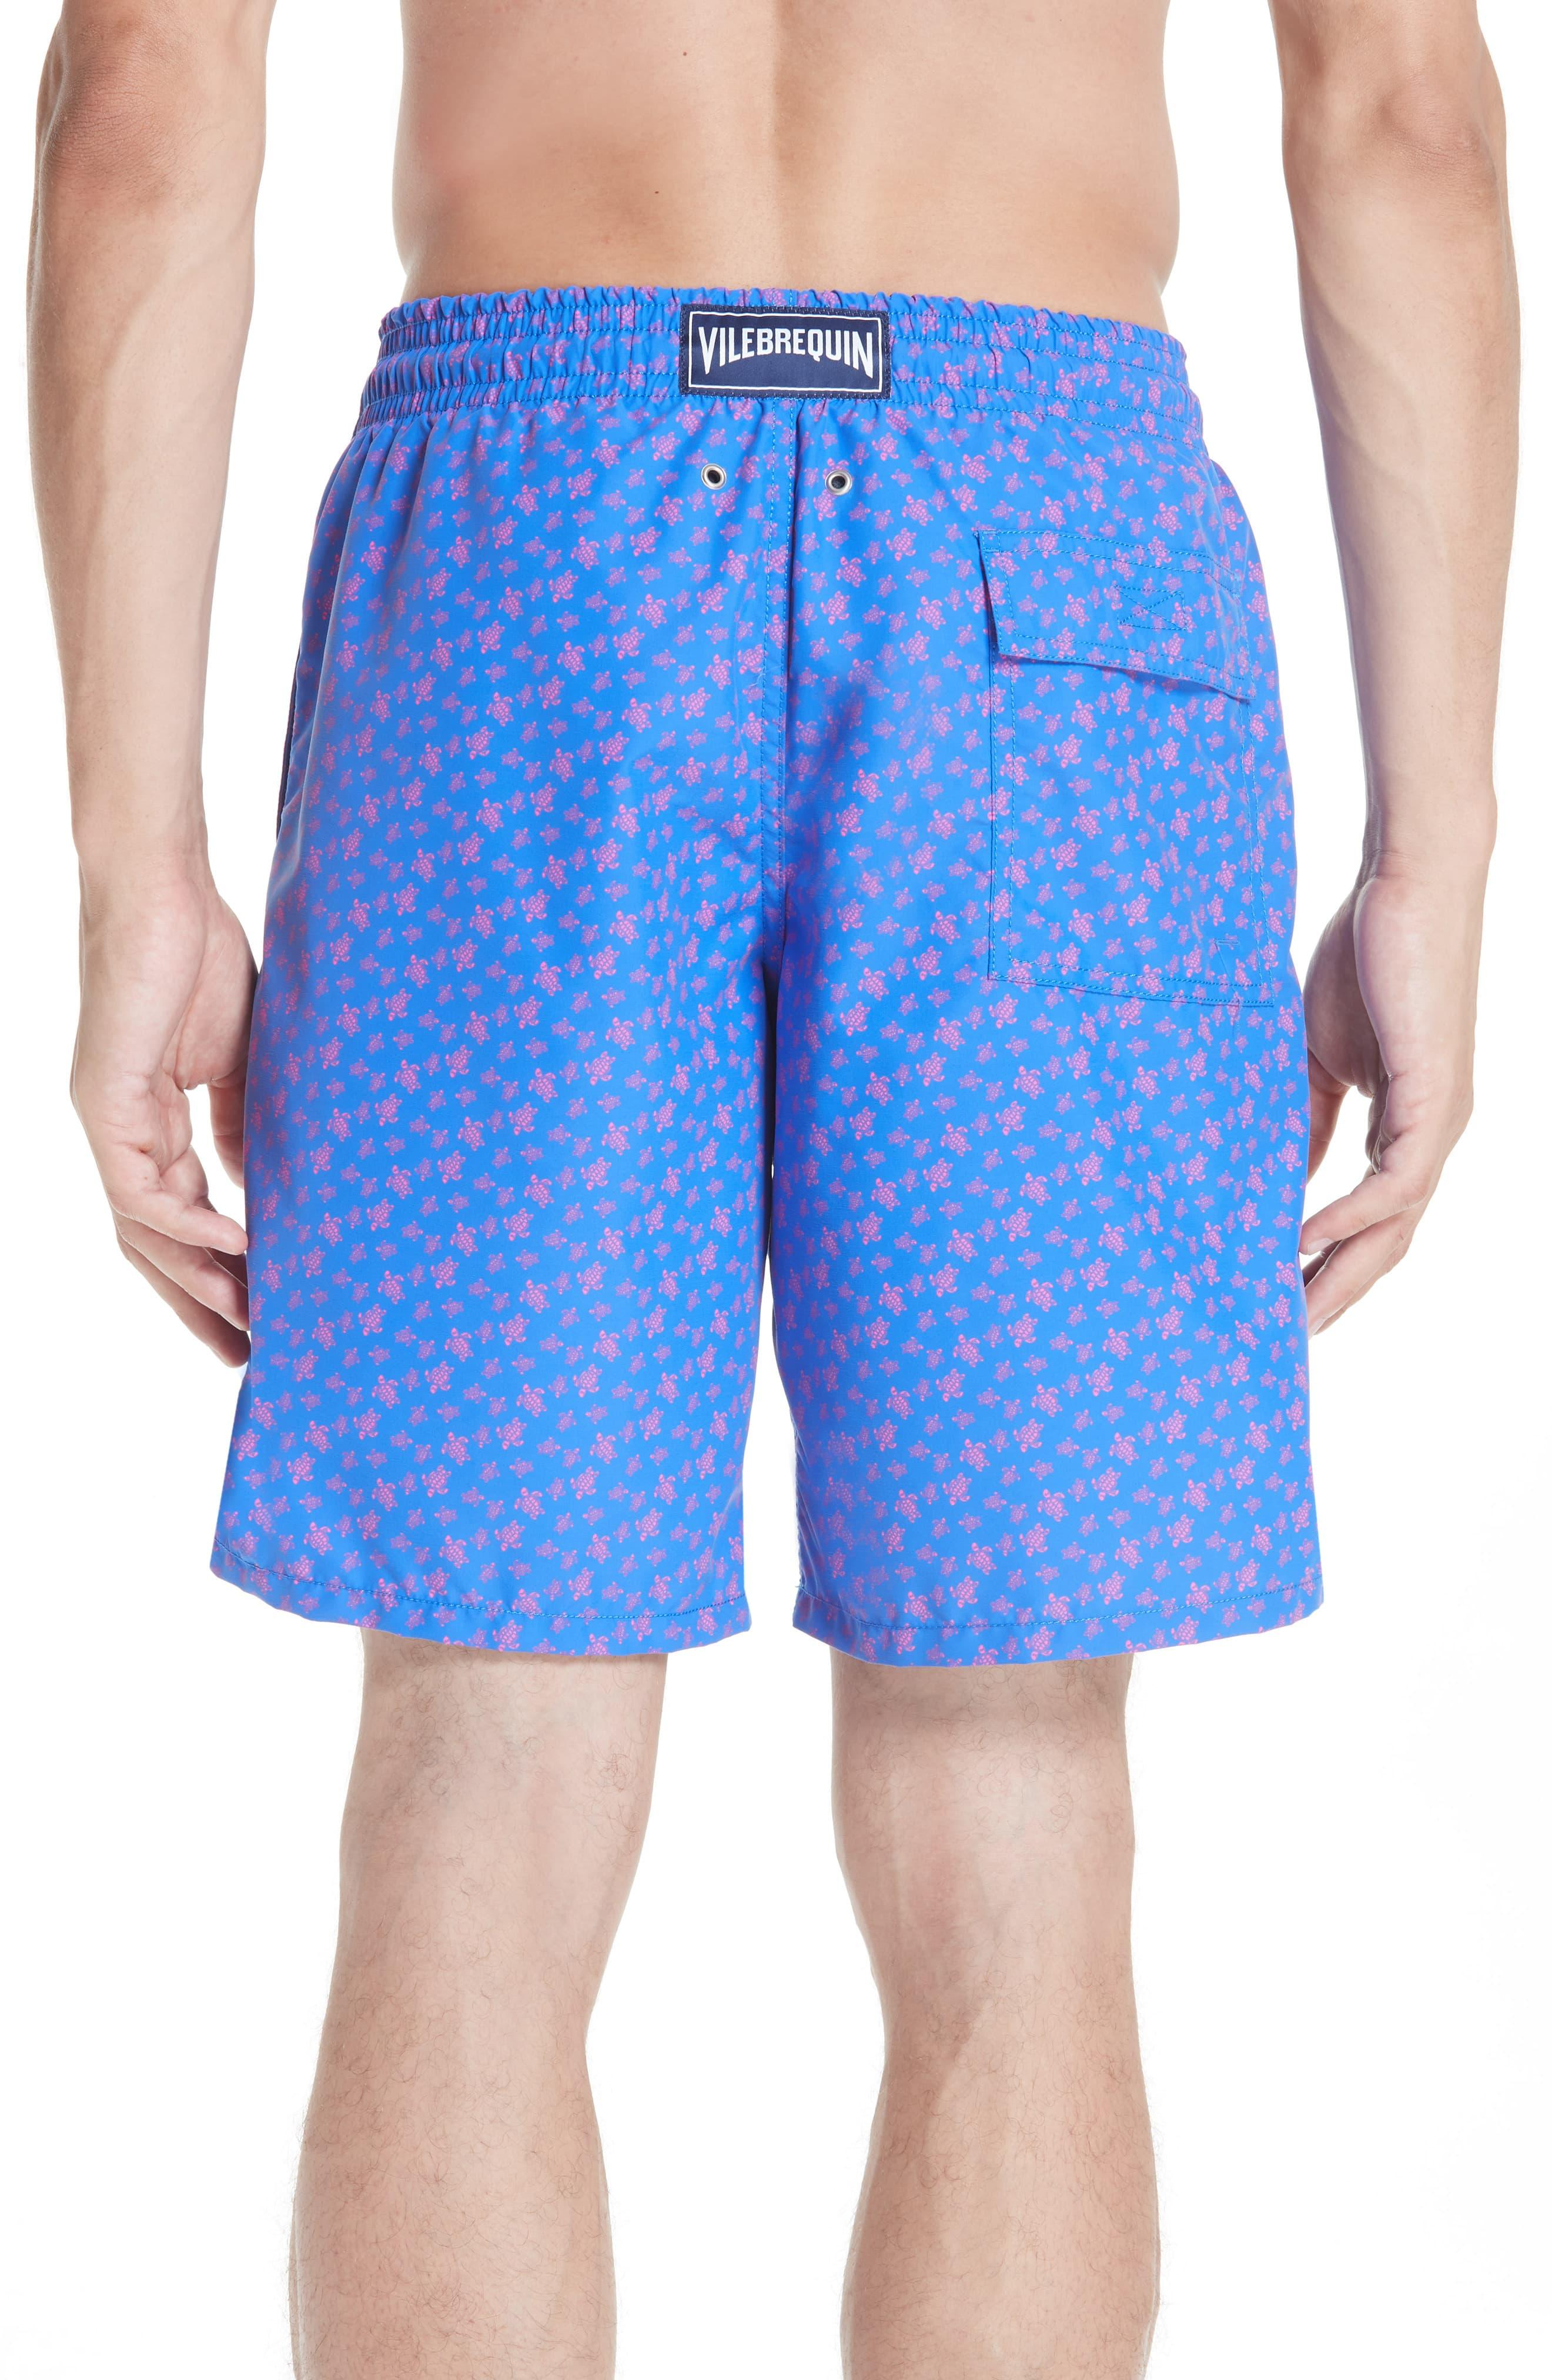 8c1d31b8c7a5a Vilebrequin - Blue Micro Ronde Turtle Print Swim Trunks for Men - Lyst.  View fullscreen